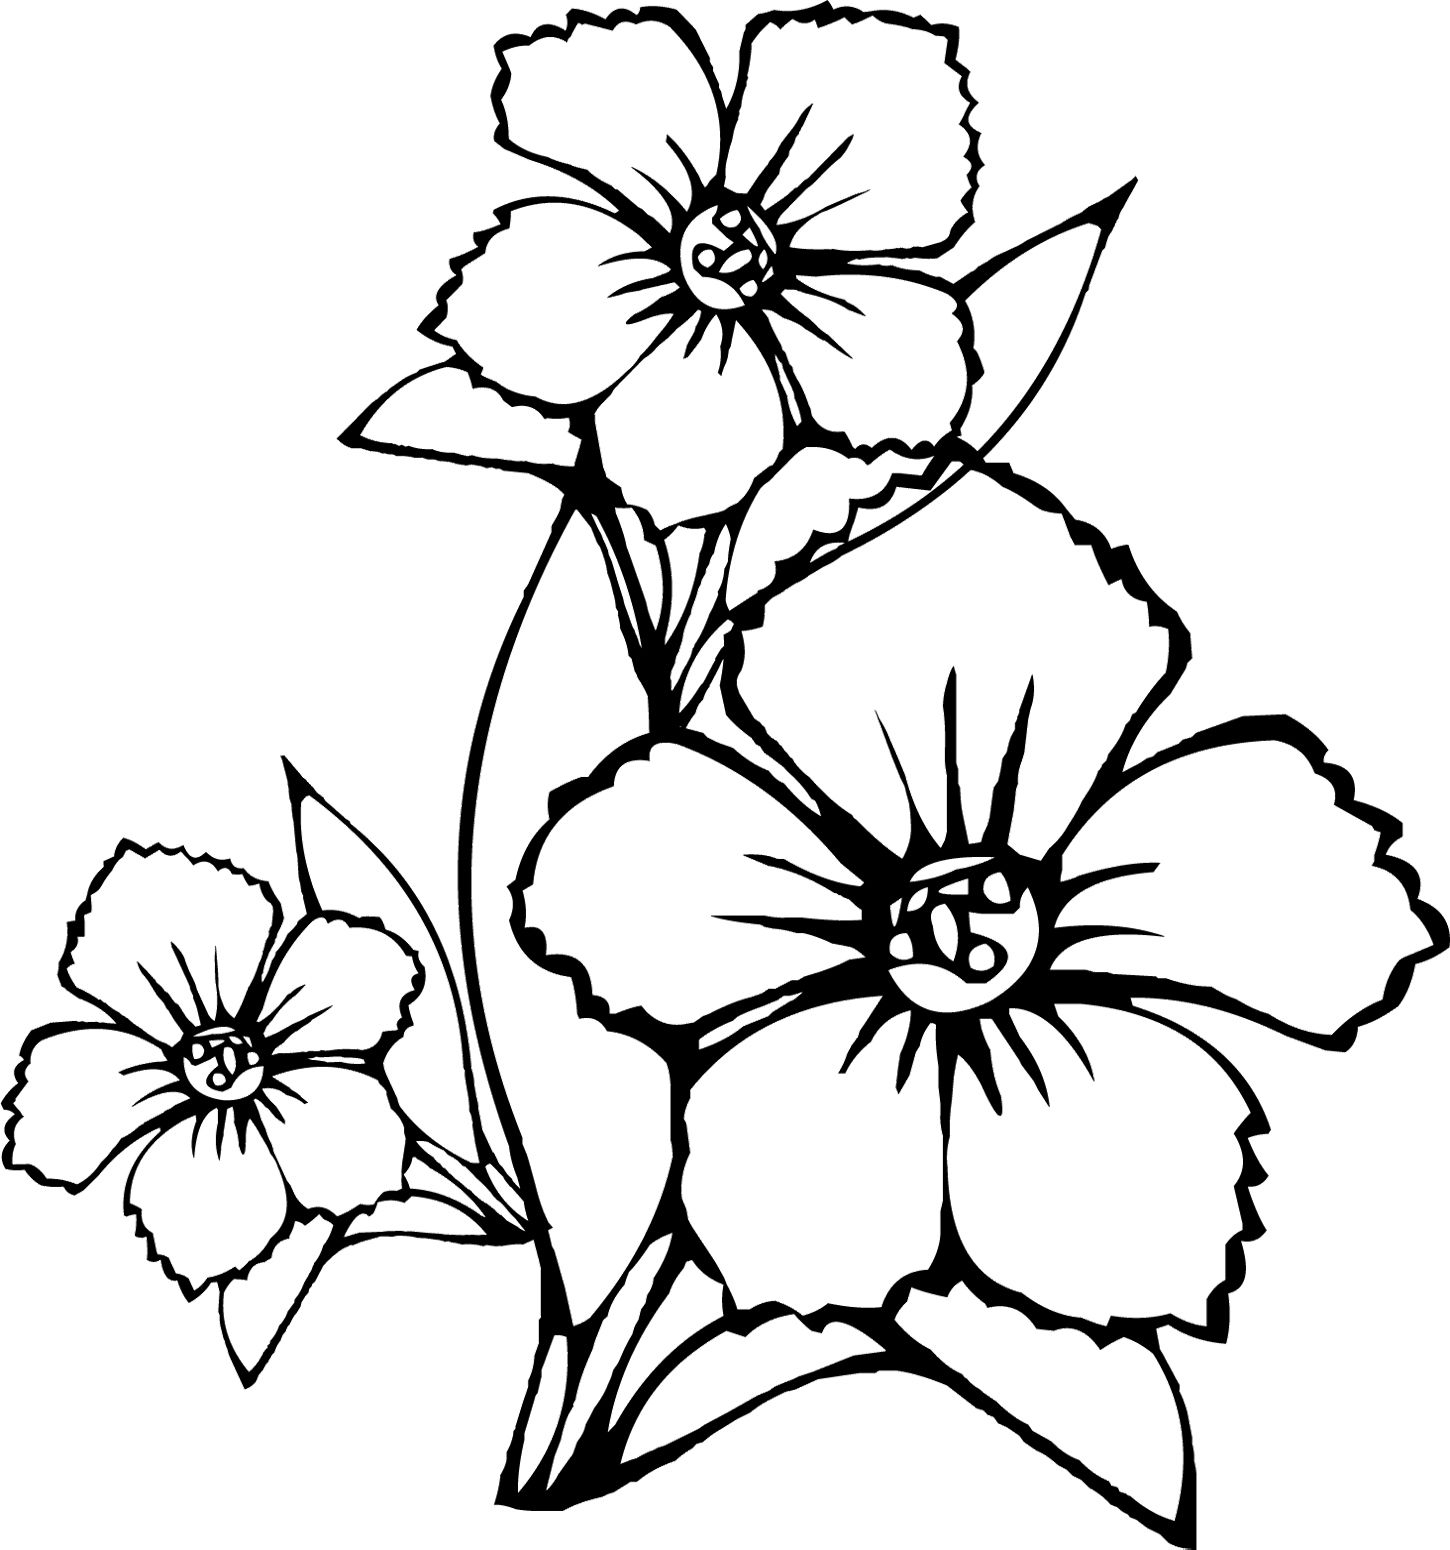 1450x1550 Flower Fairy Zinnia Coloring Page For Kids For Girls Coloring